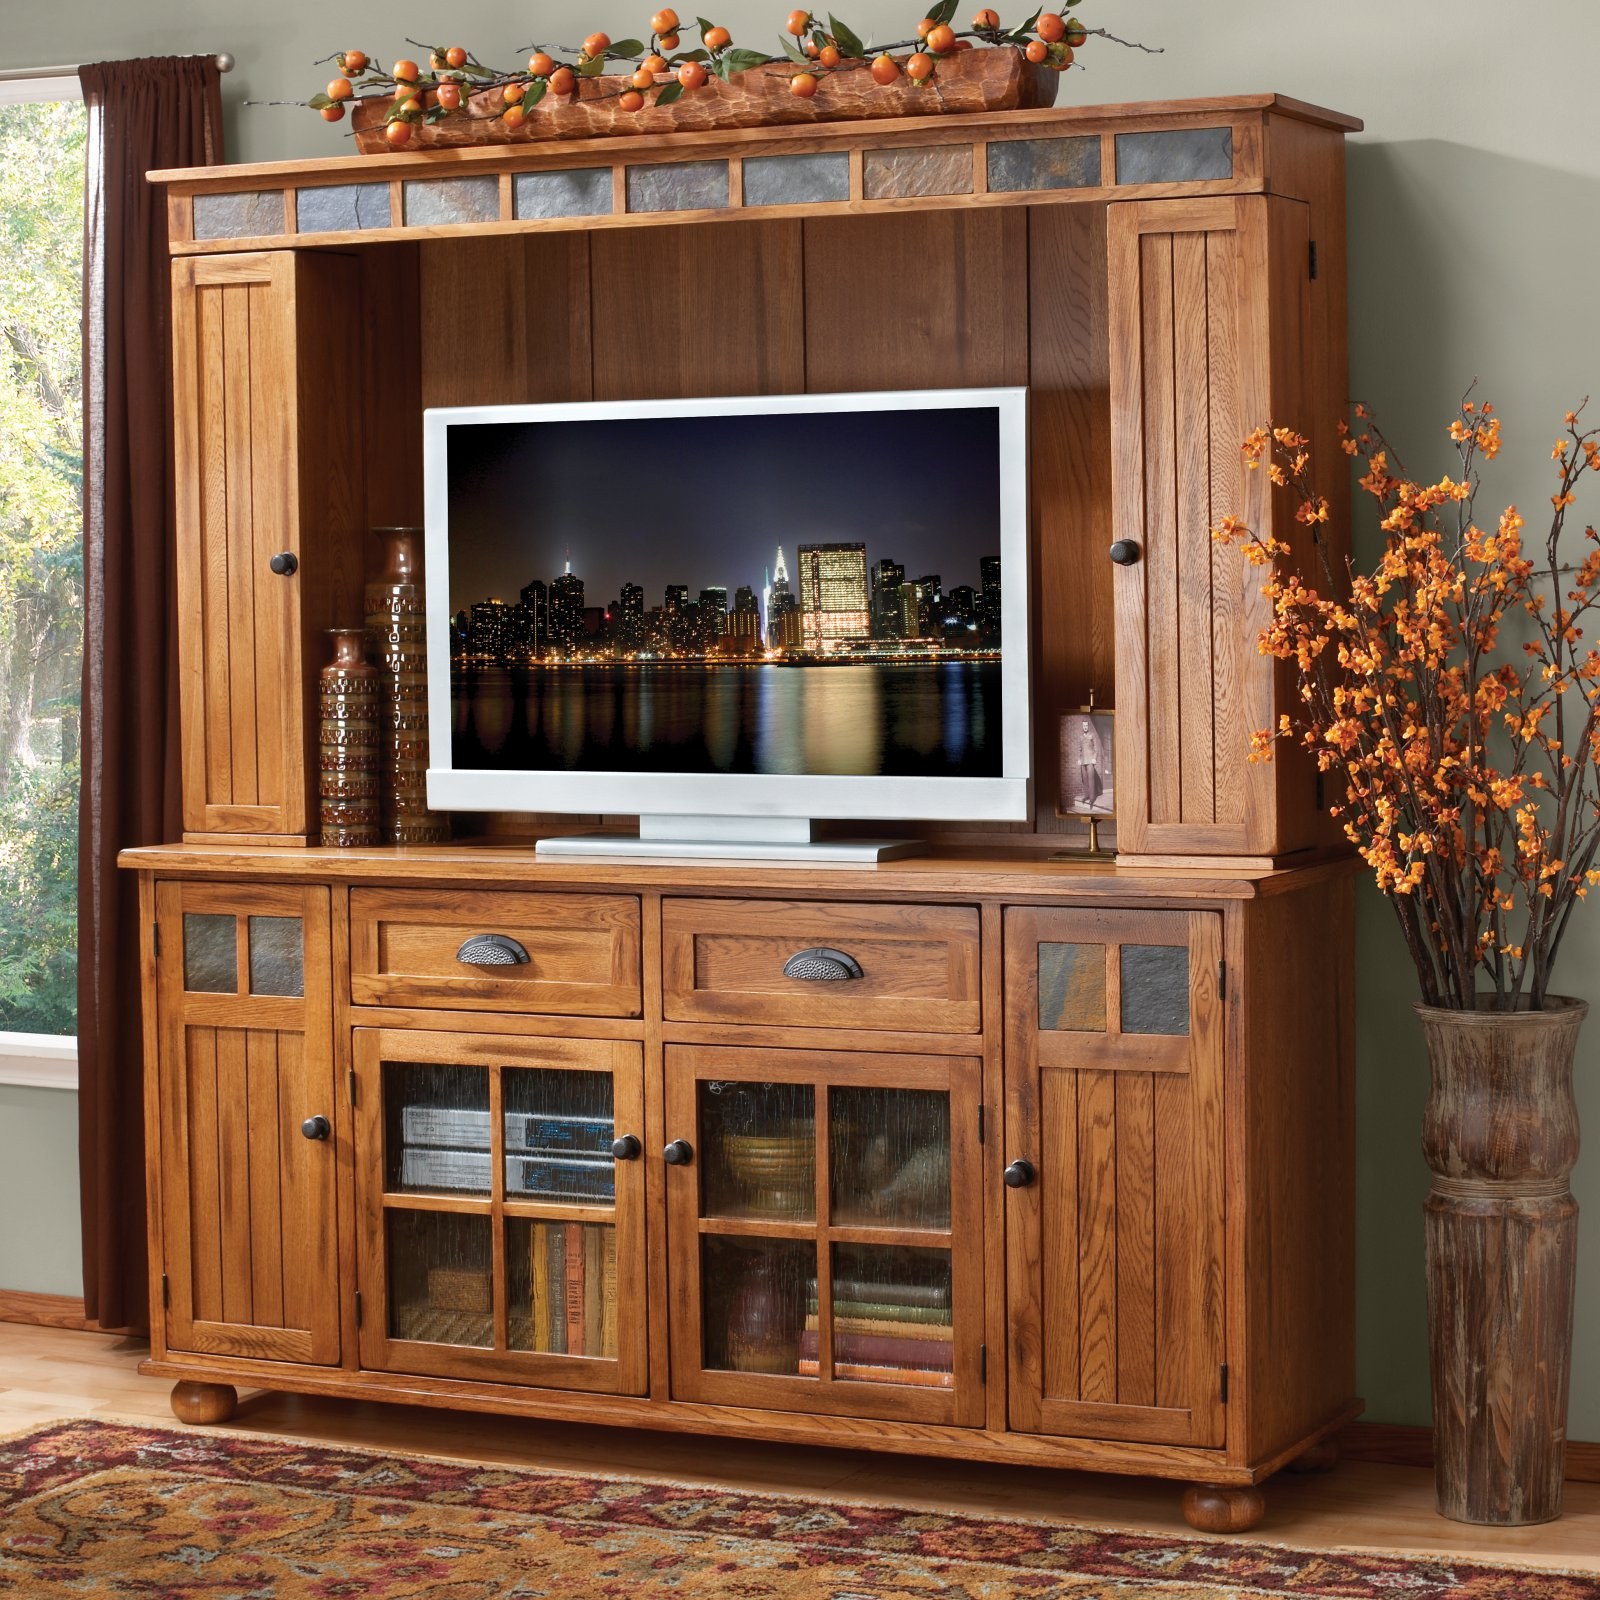 Sunny Designs Sedona 72 in. TV Console with Hutch